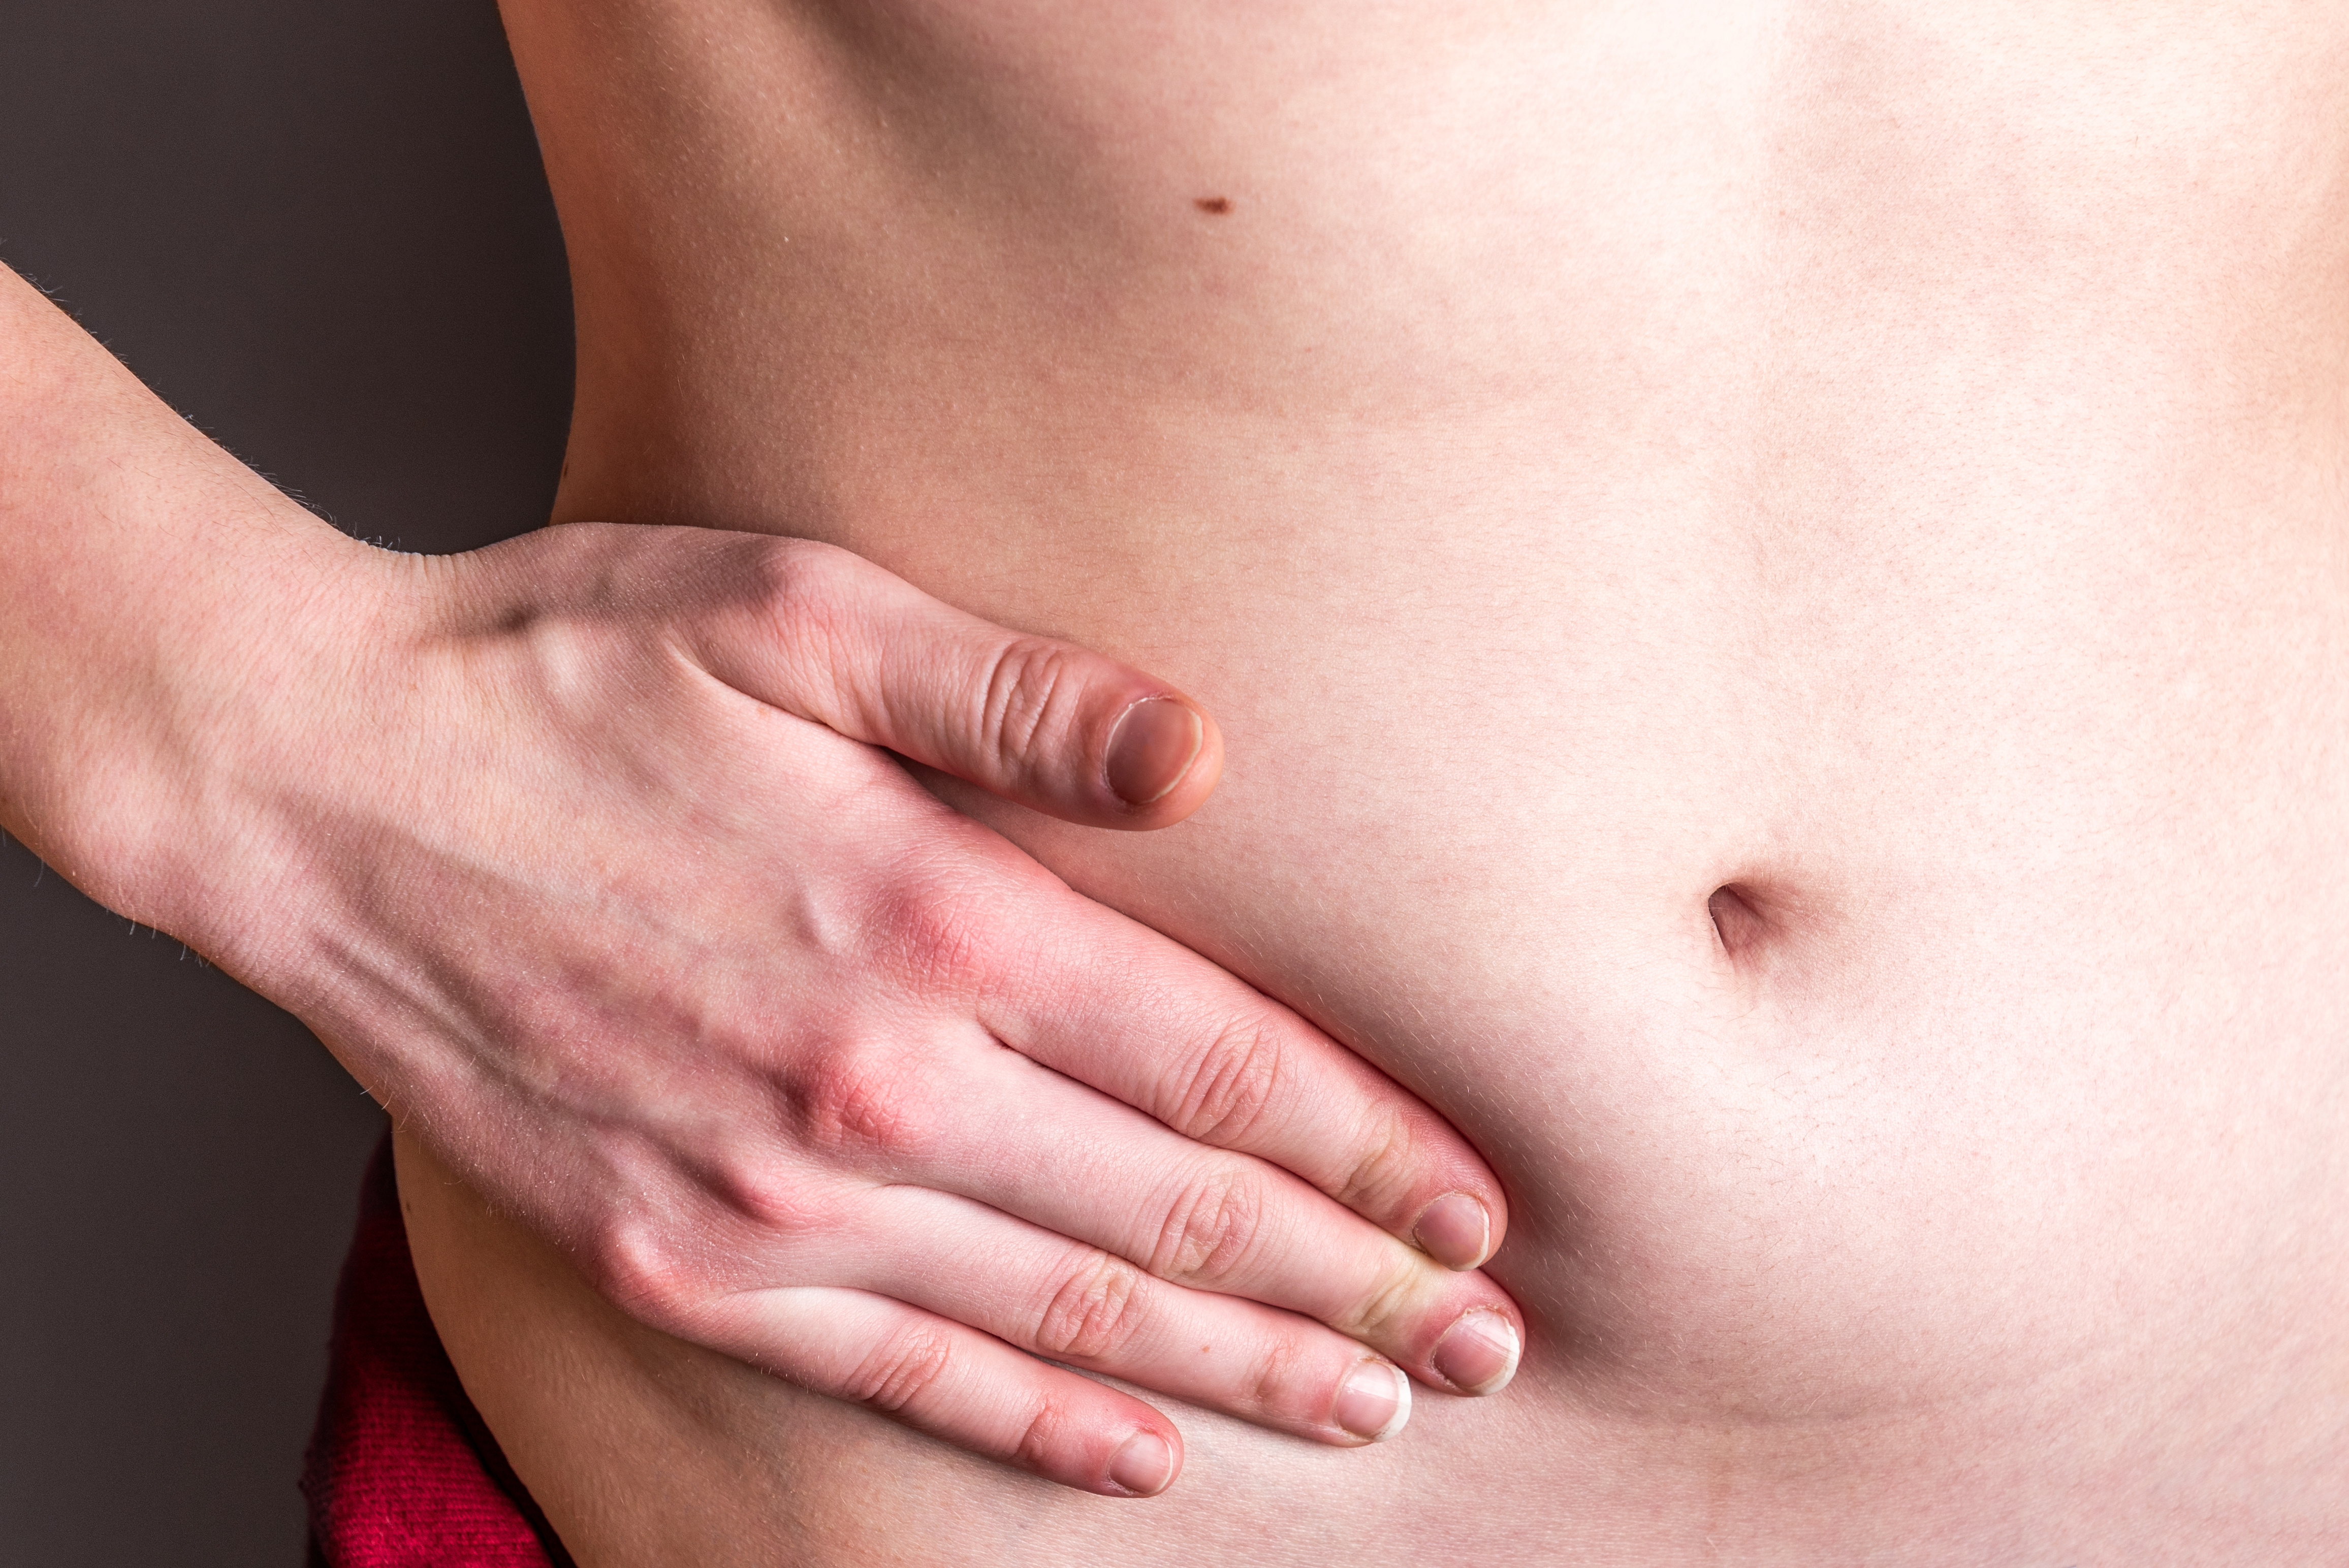 When is it Time to Have Hernia Surgery?